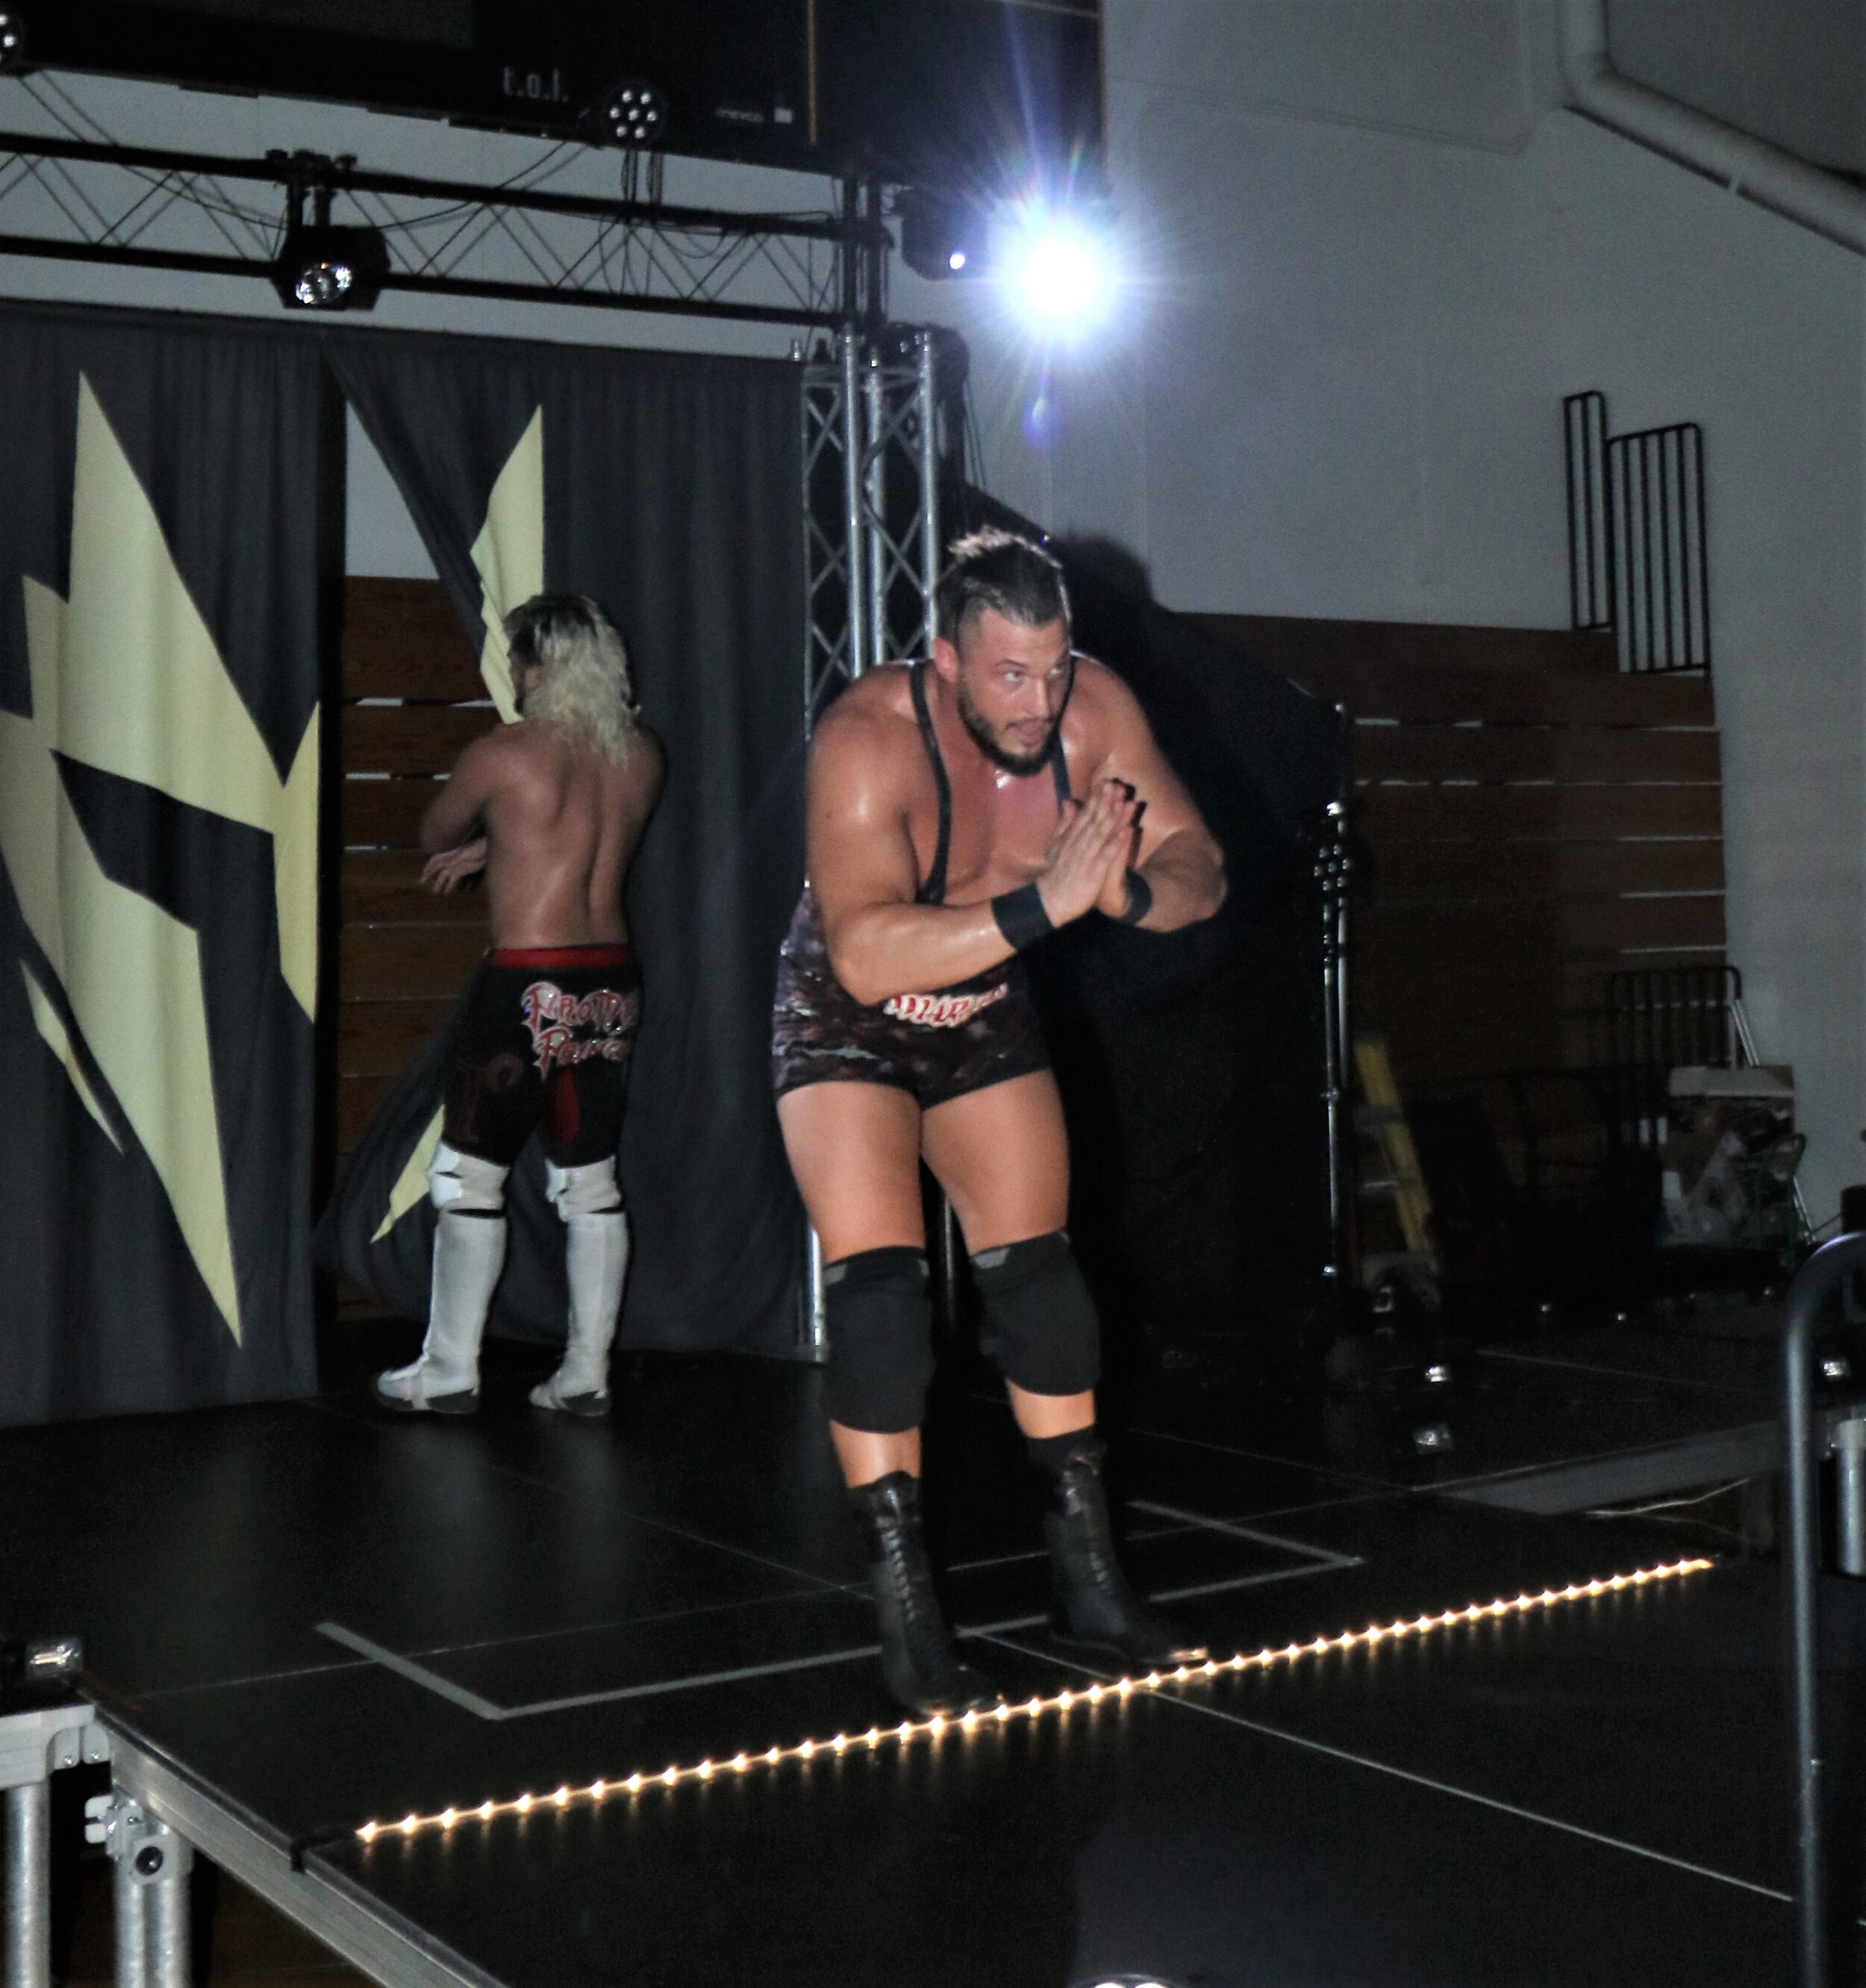 Wardlow takes a bow for the Warrior Wrestling crowd. He recently signed with AEW.